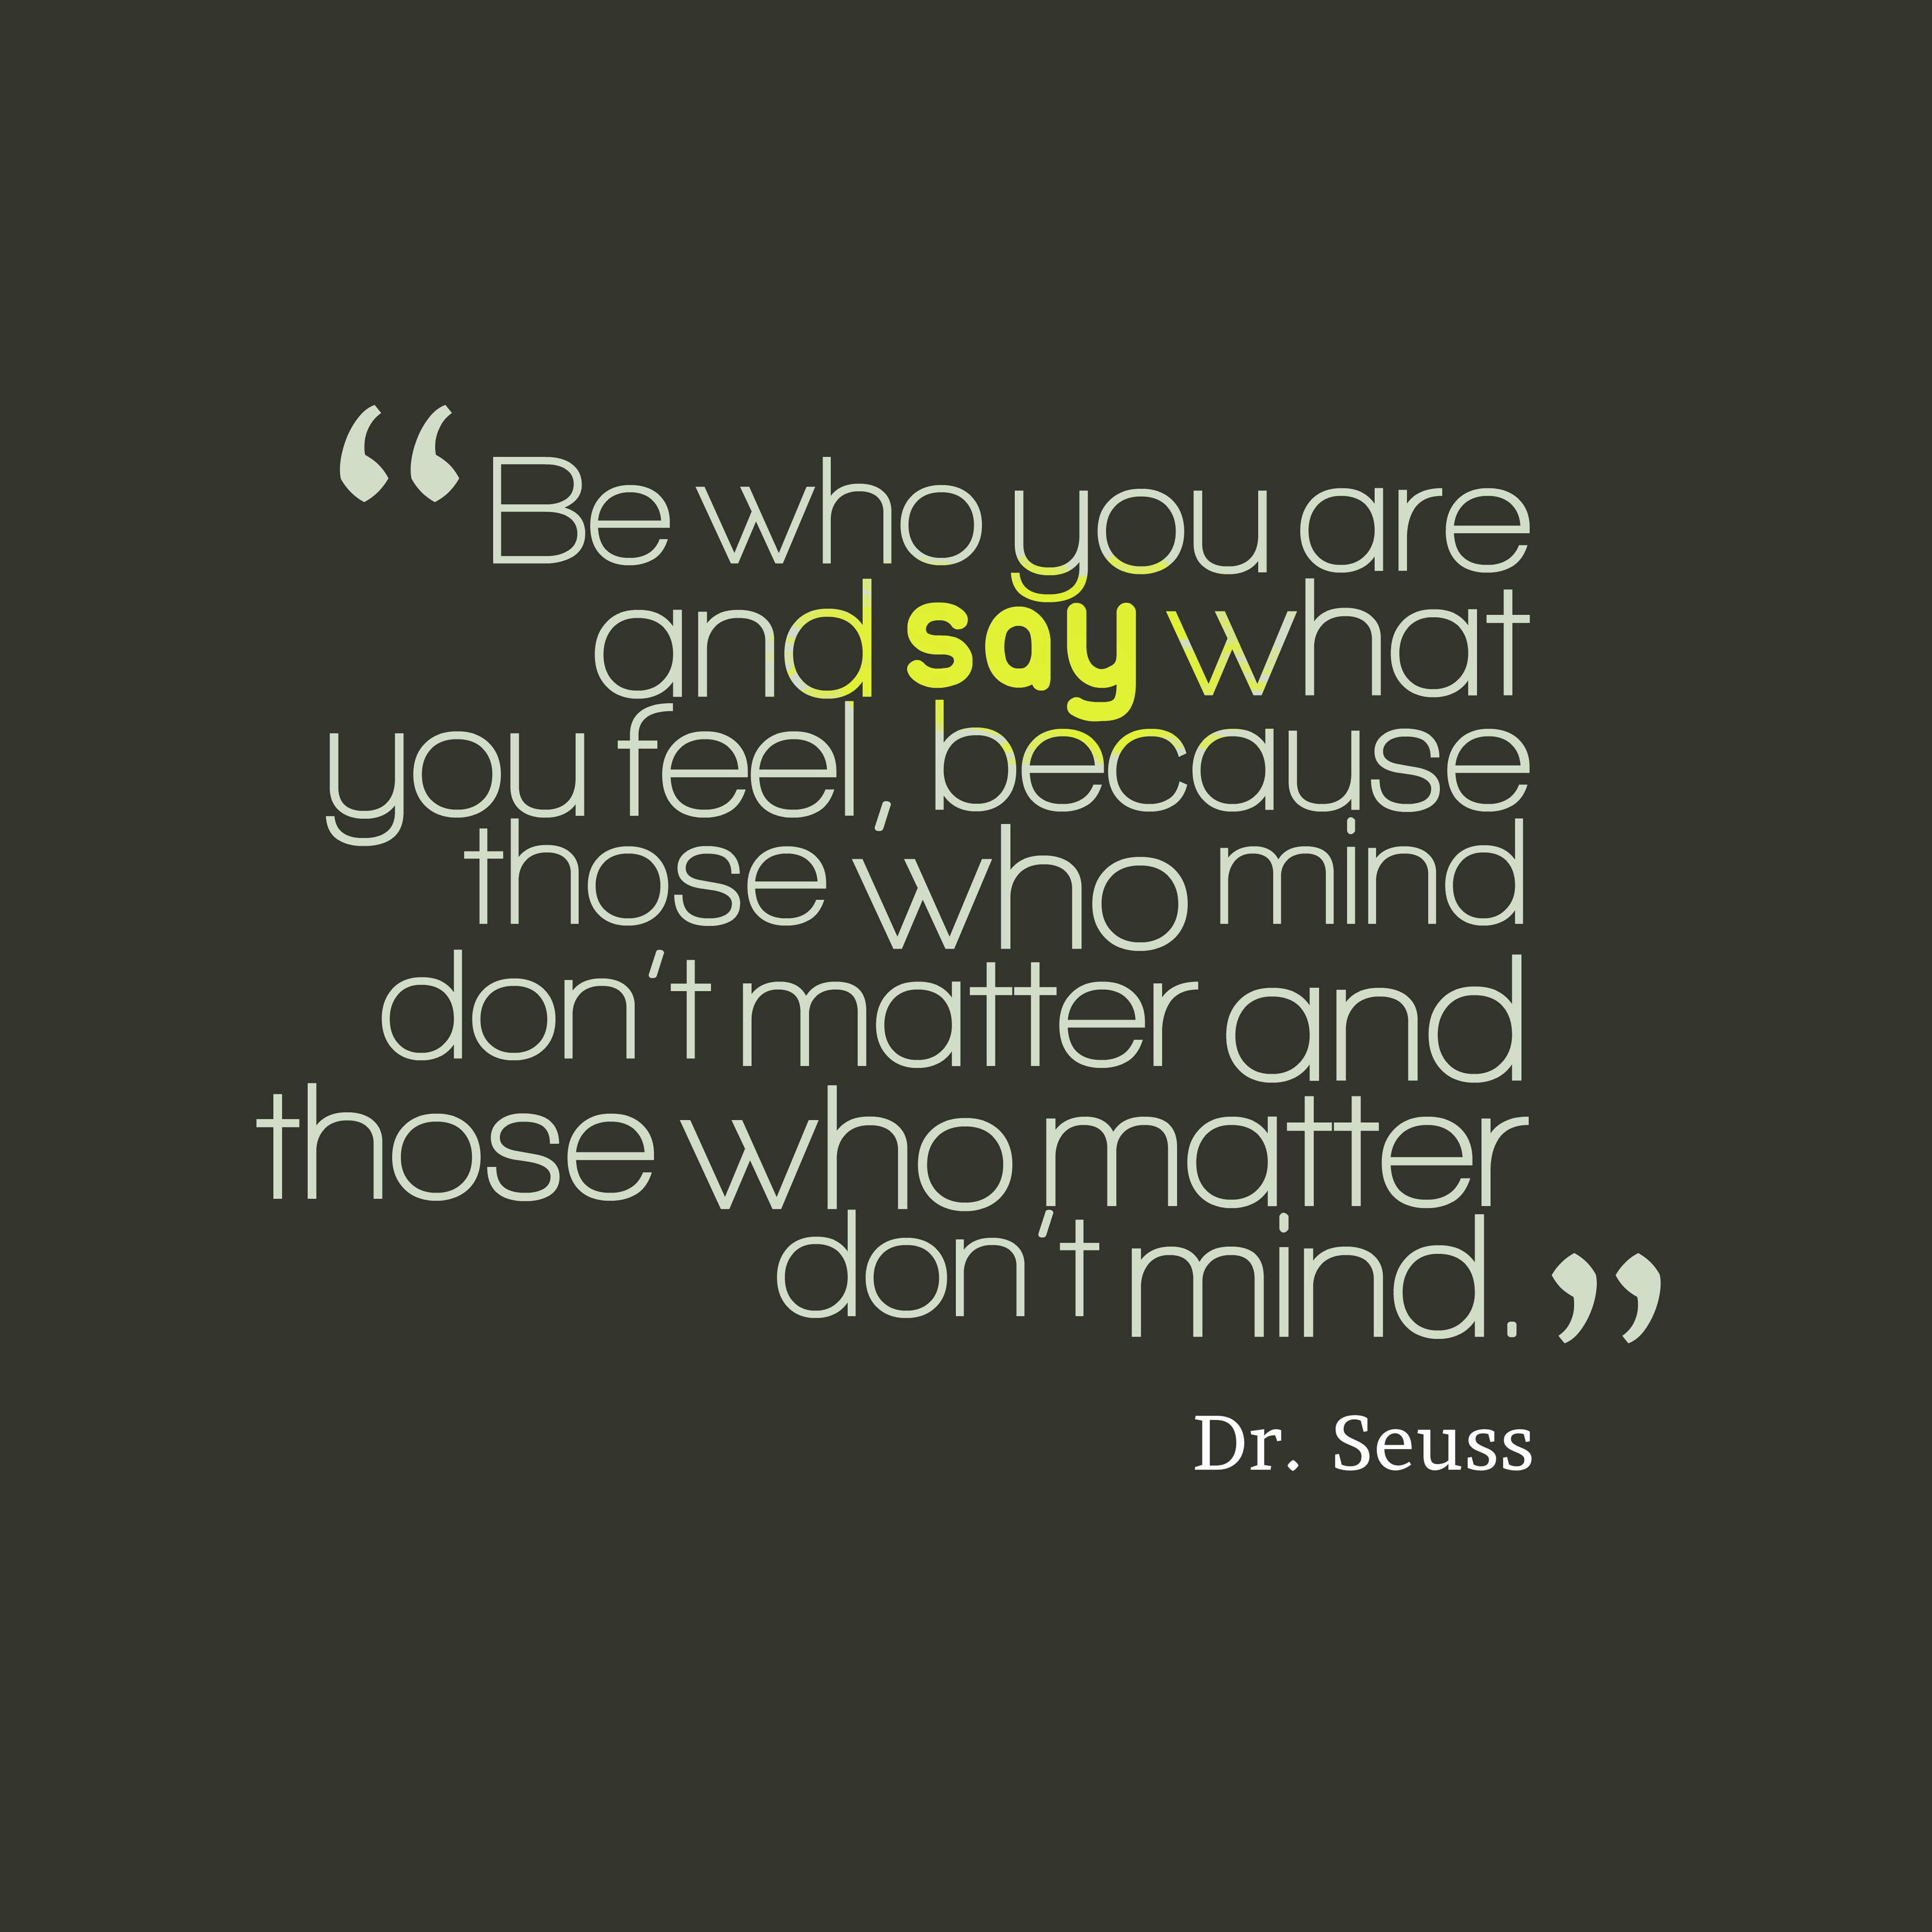 Dr Seuss Quote About Self